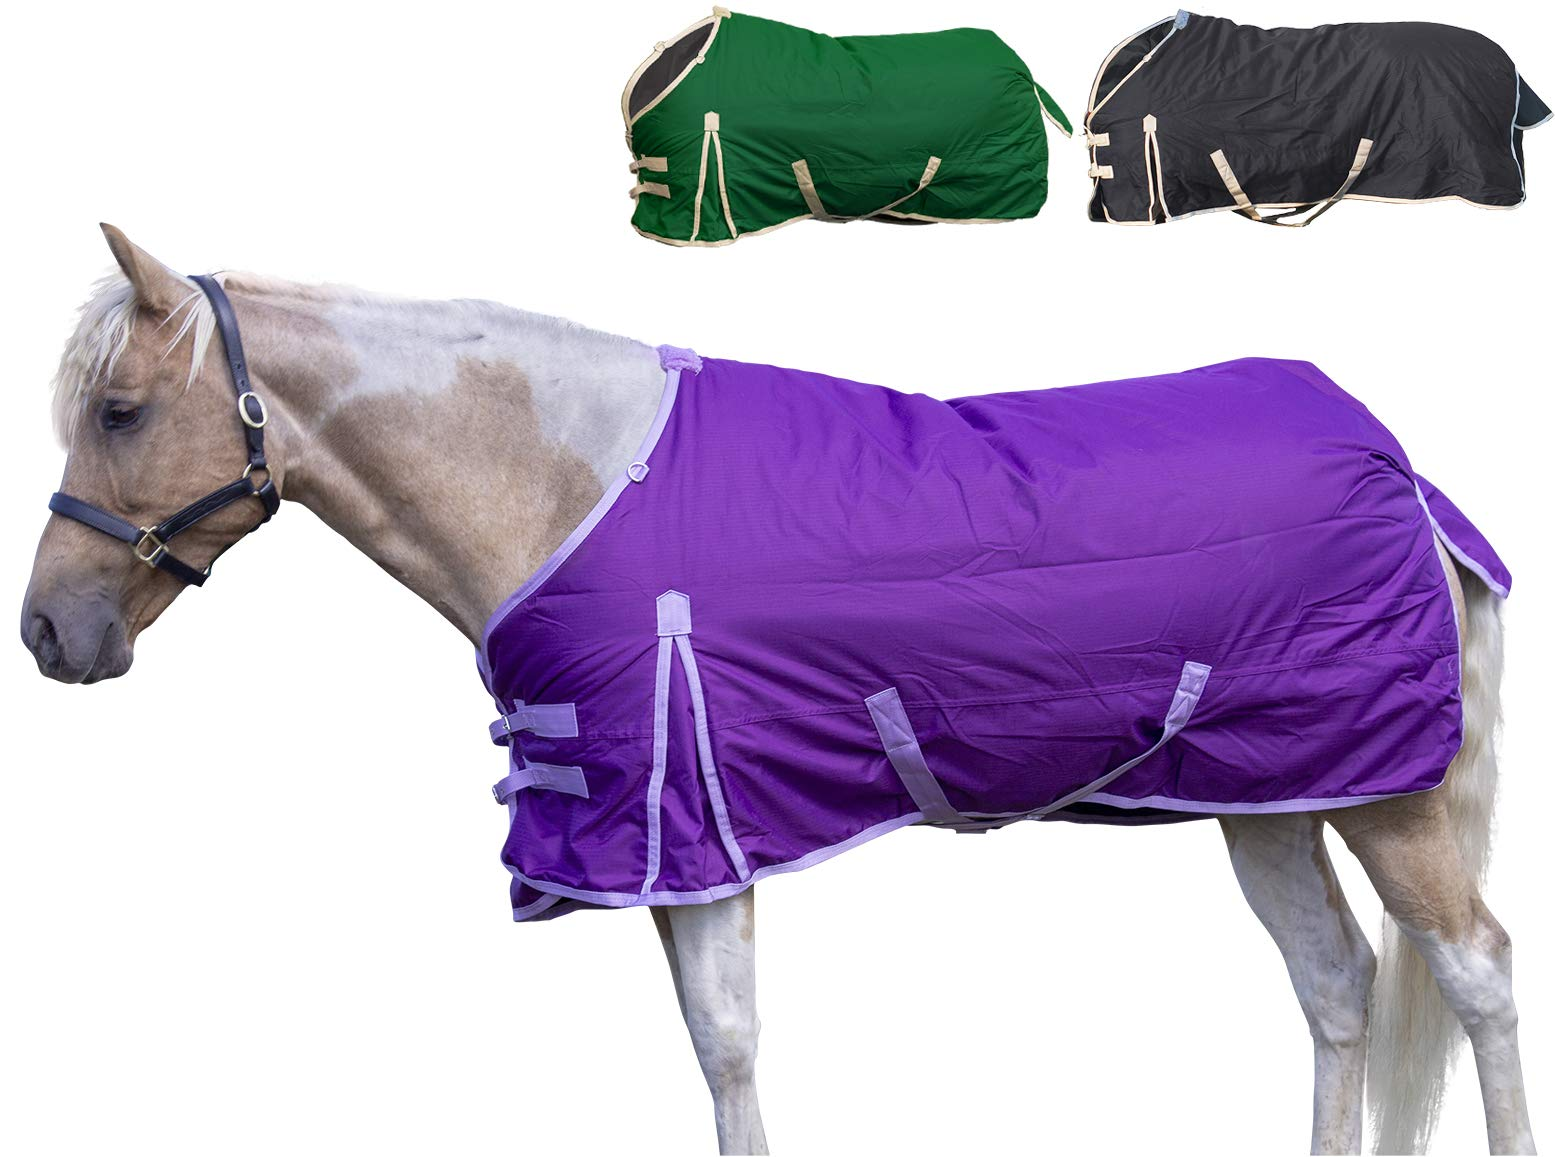 Derby Originals Deluxe 600D Nylon Winter Turnout Blanket- Horse and Pony Sizes by Derby Originals